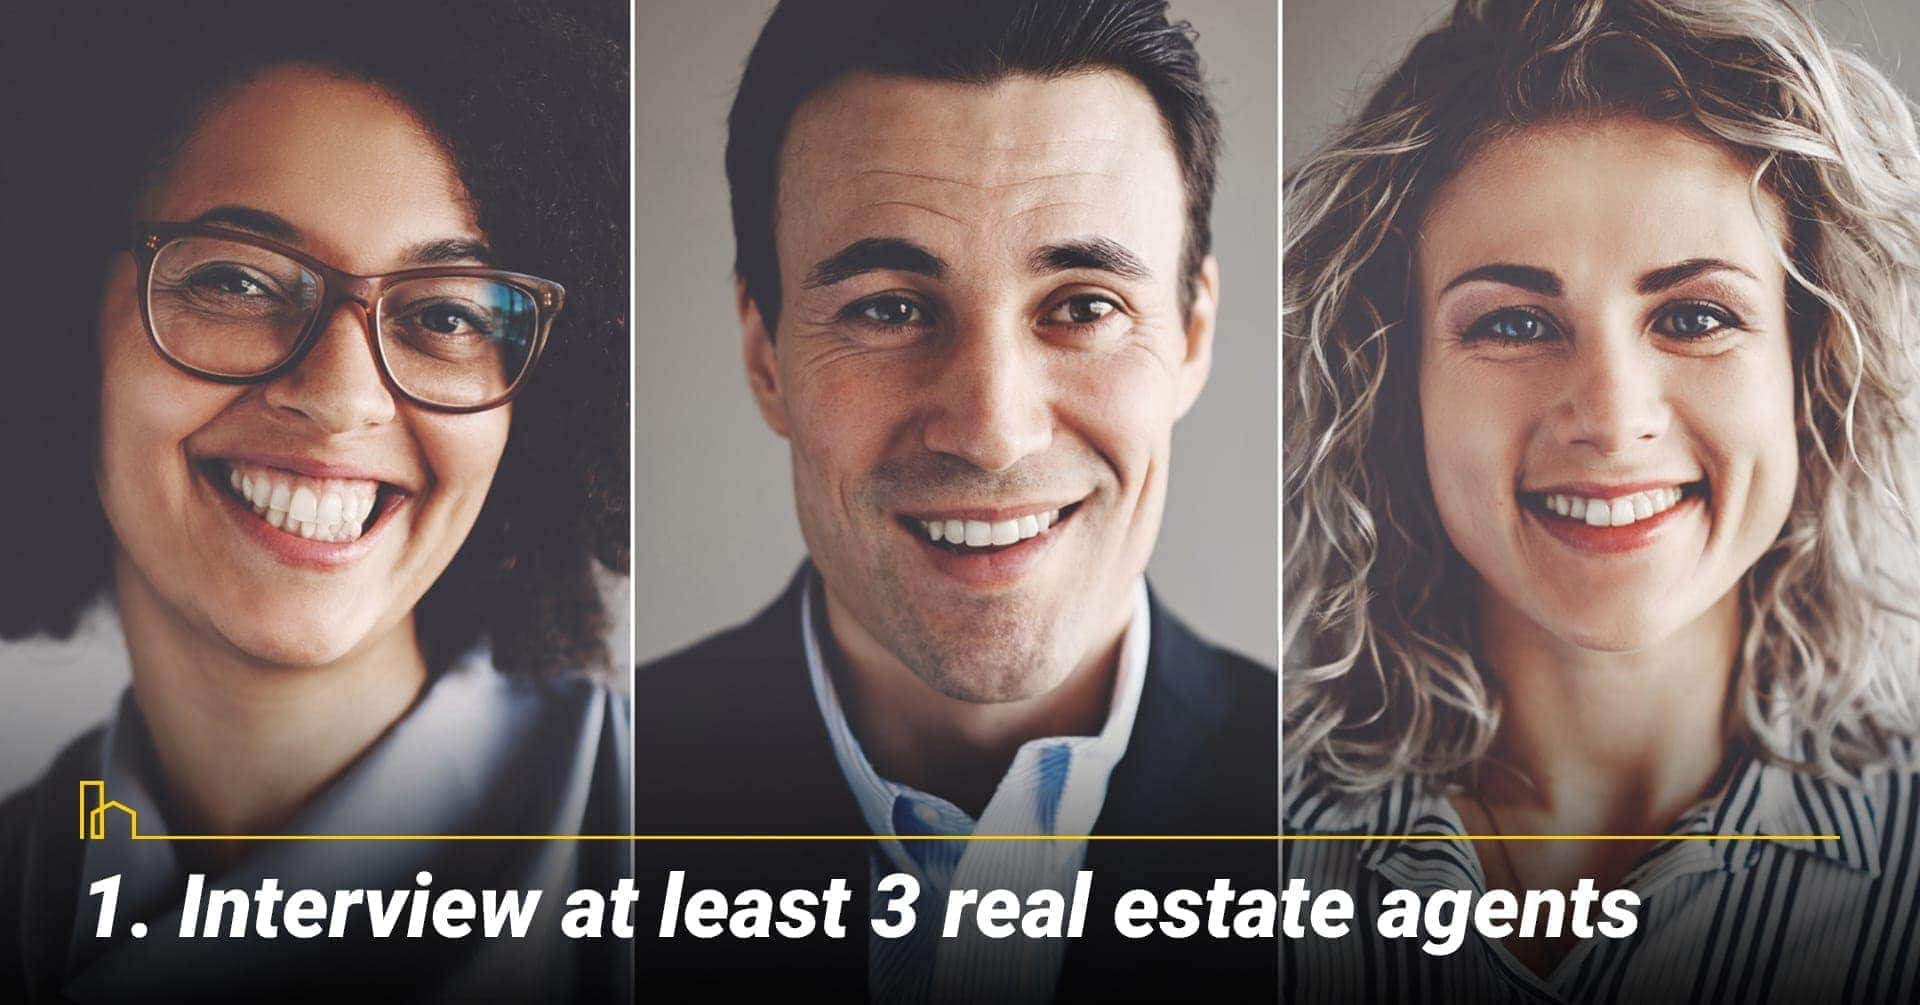 Interview at least 3 real estate agents